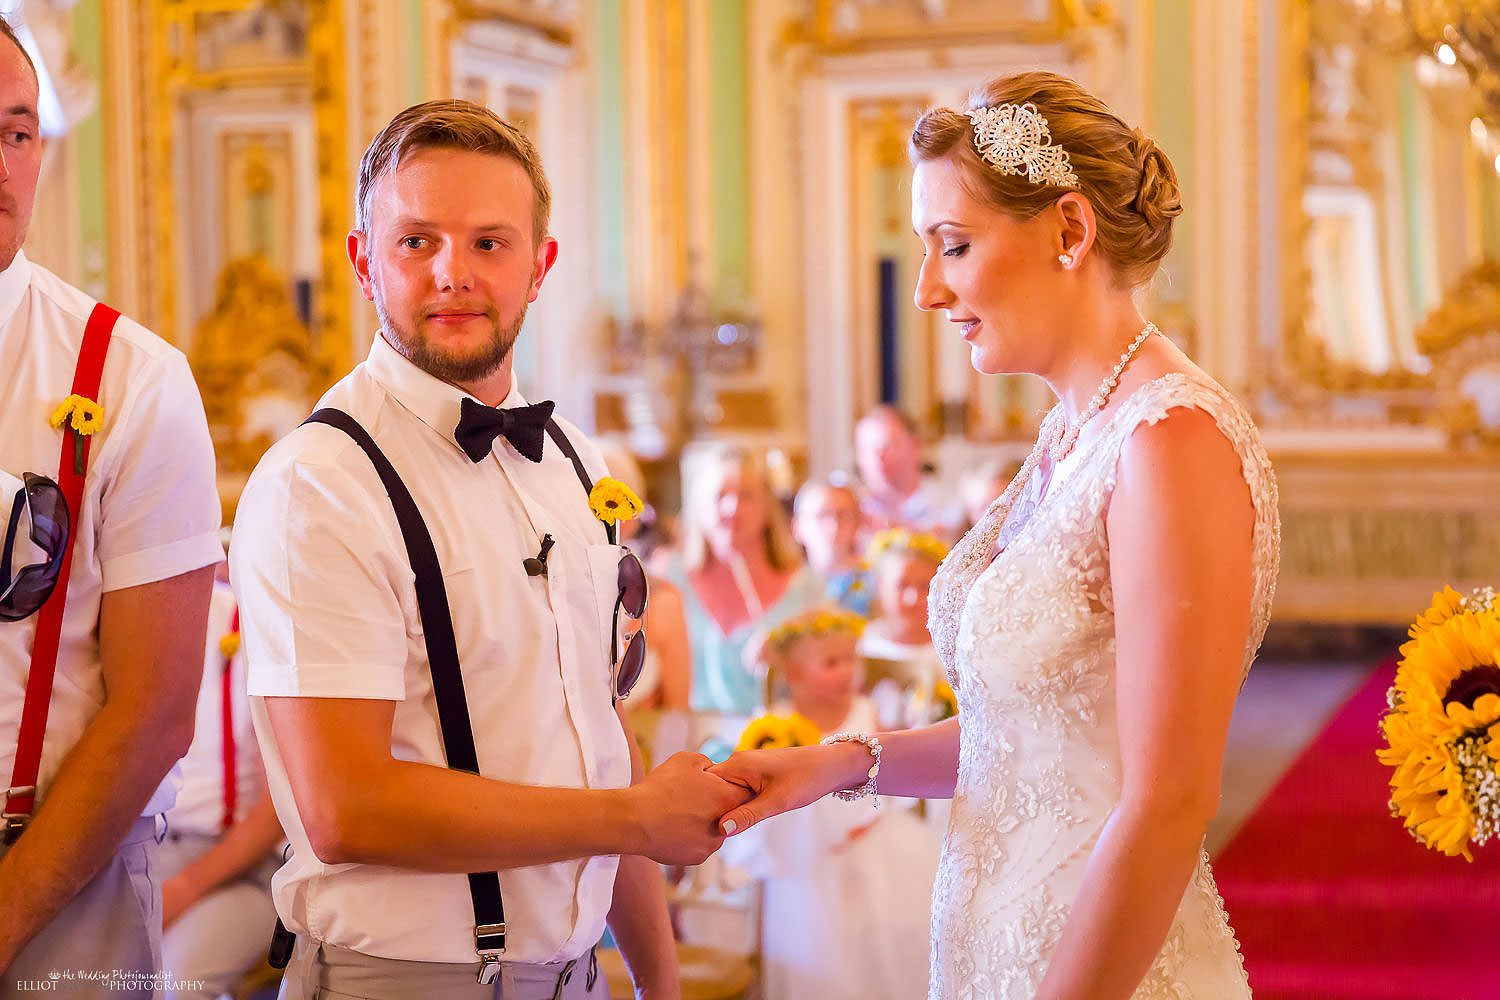 bride and groom say their vows during the civil ceremony at the Palazzo Parisio in Malta.